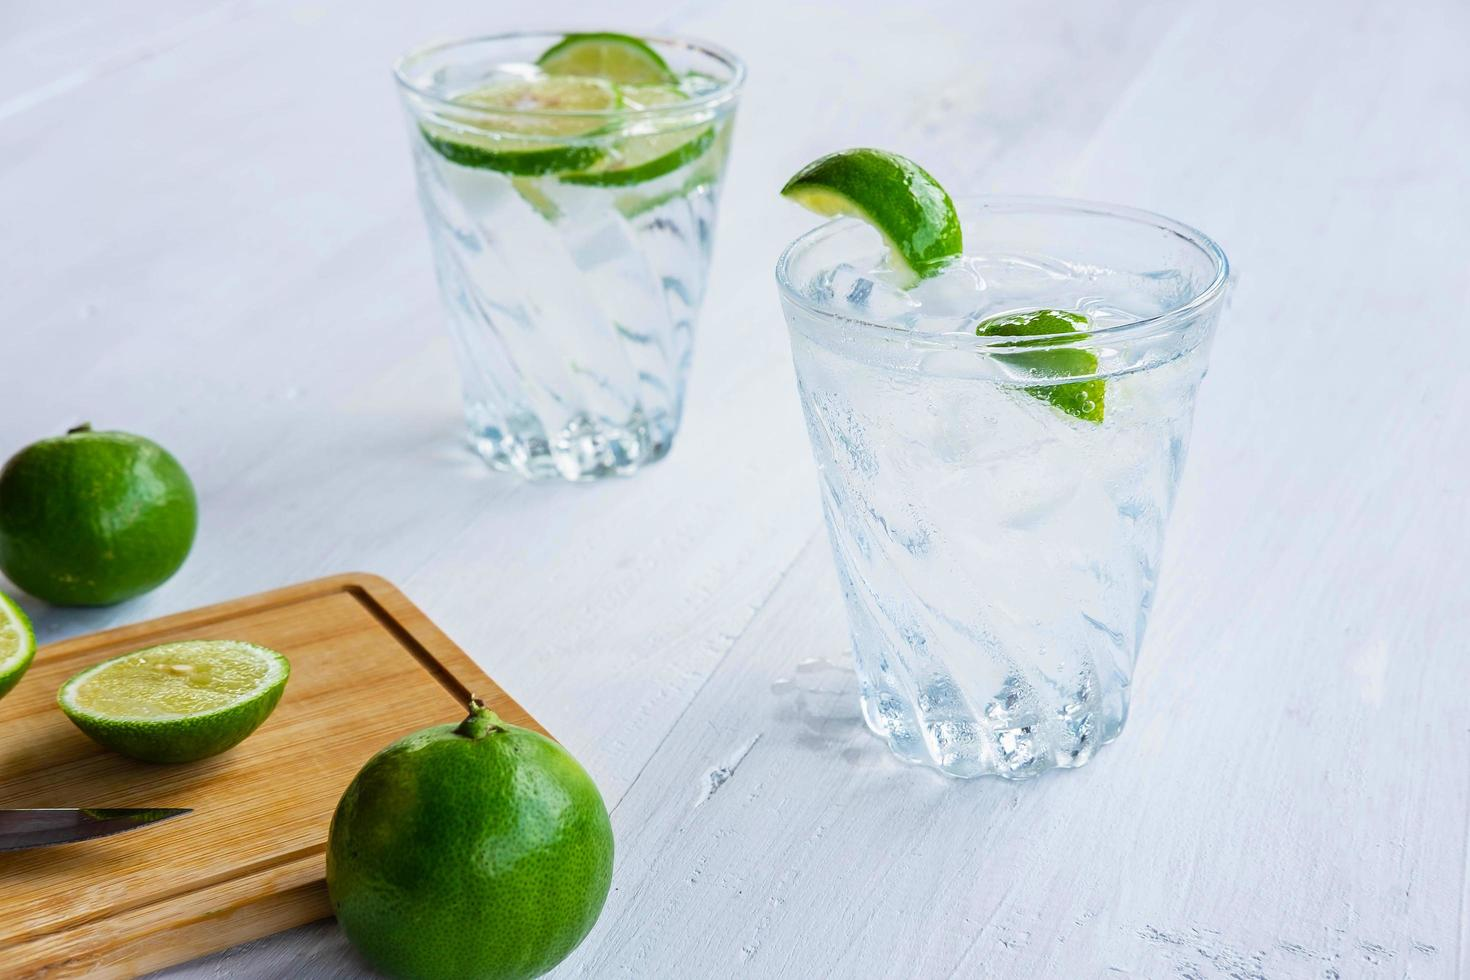 A glass of soda lemon and lime on the table photo